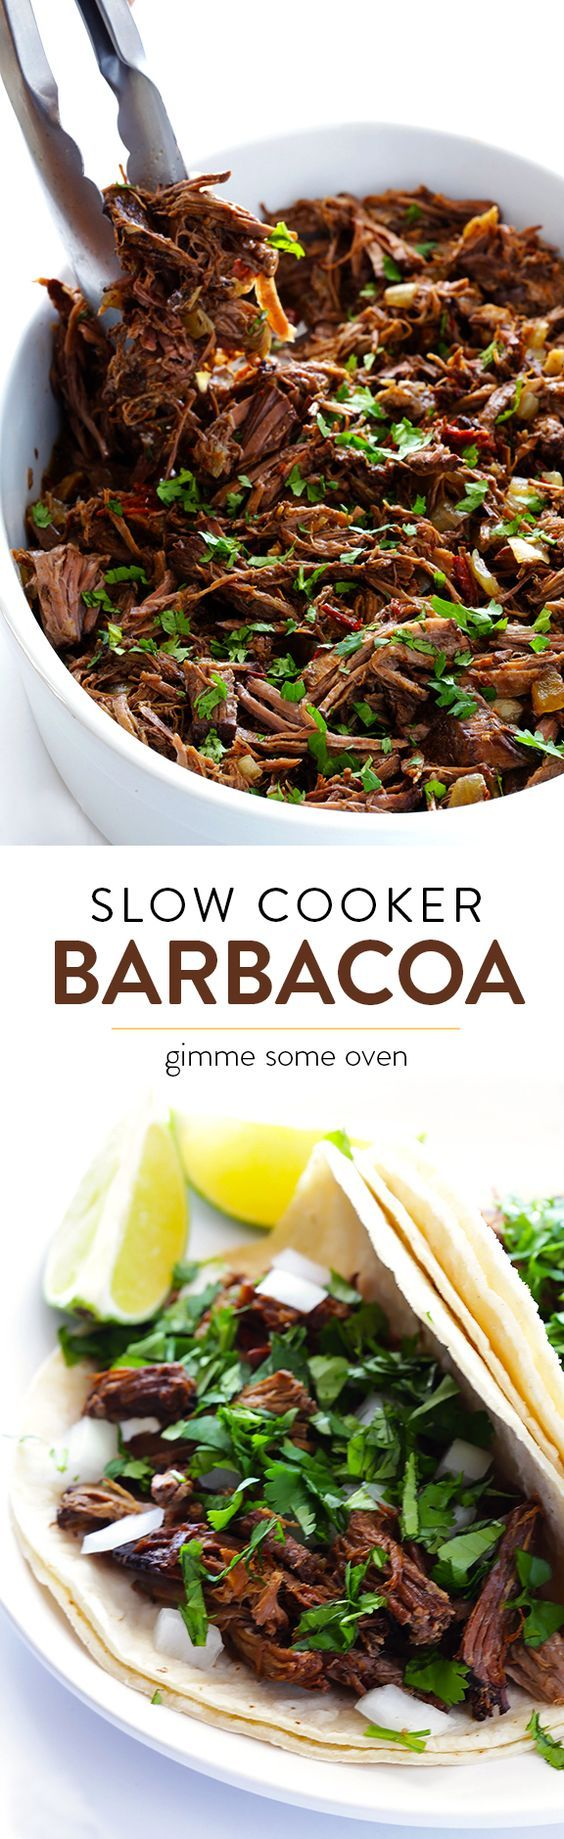 Barbacoa Recipe plus 49 of the most pinned crock pot recipes